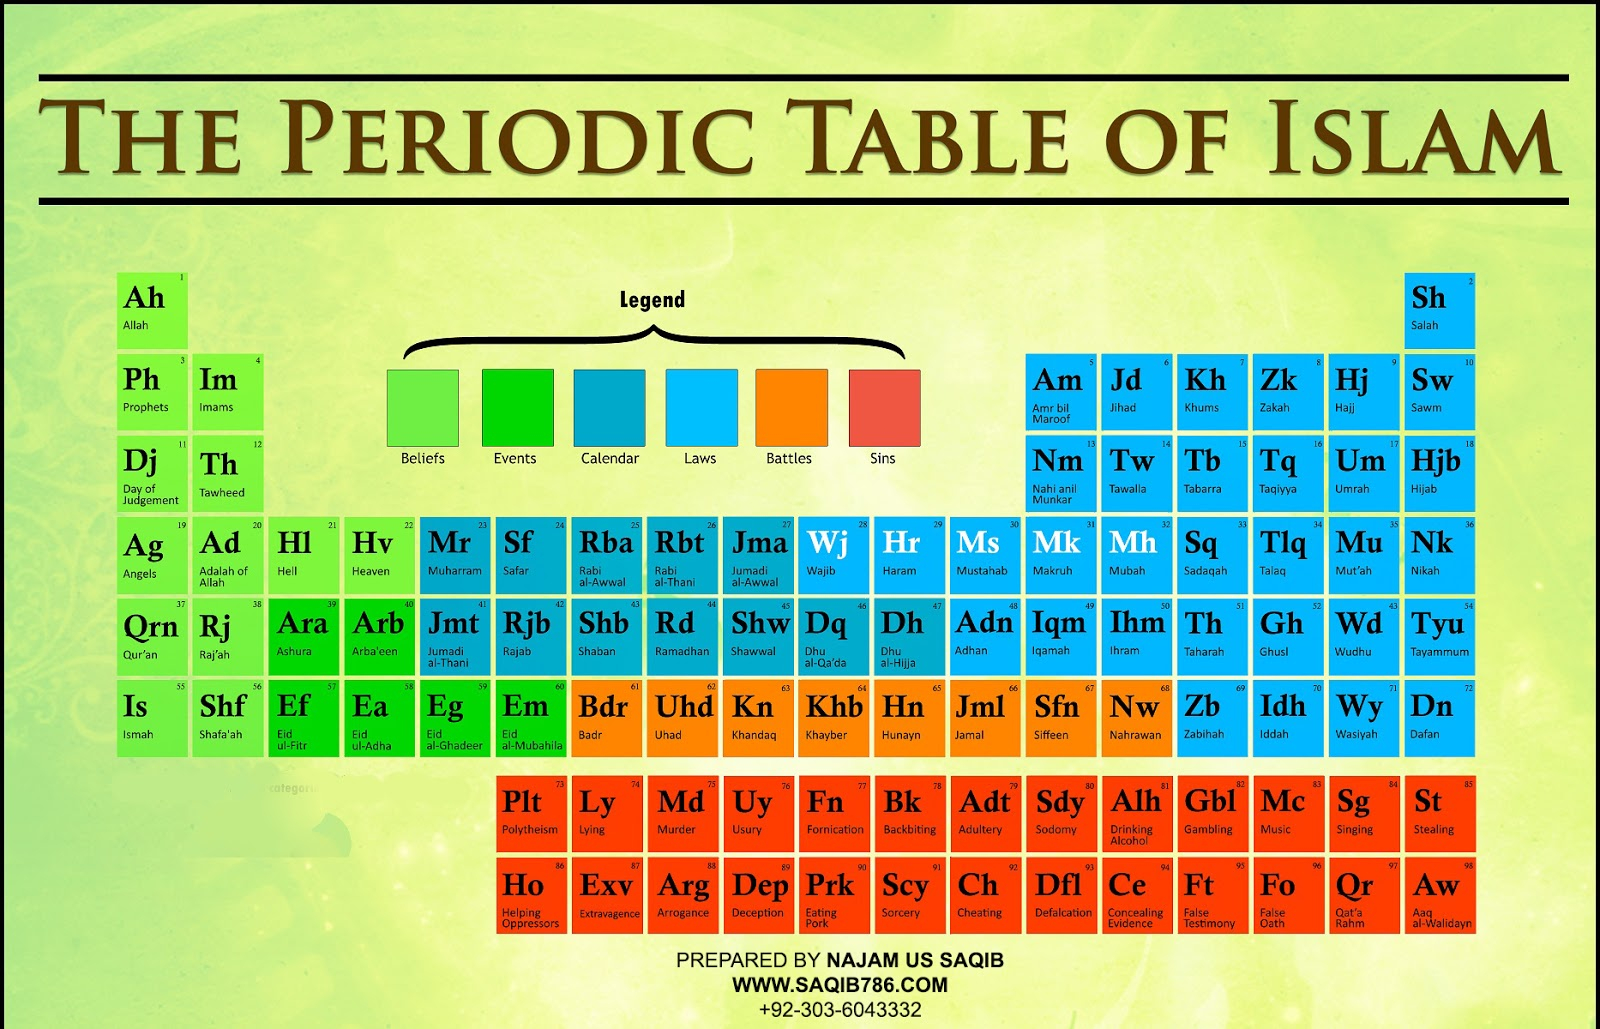 Islamic Periodic Table (Calendar) – Welcome From Najam Us Saqib Regarding How Is The Periodic Table Like A Calender